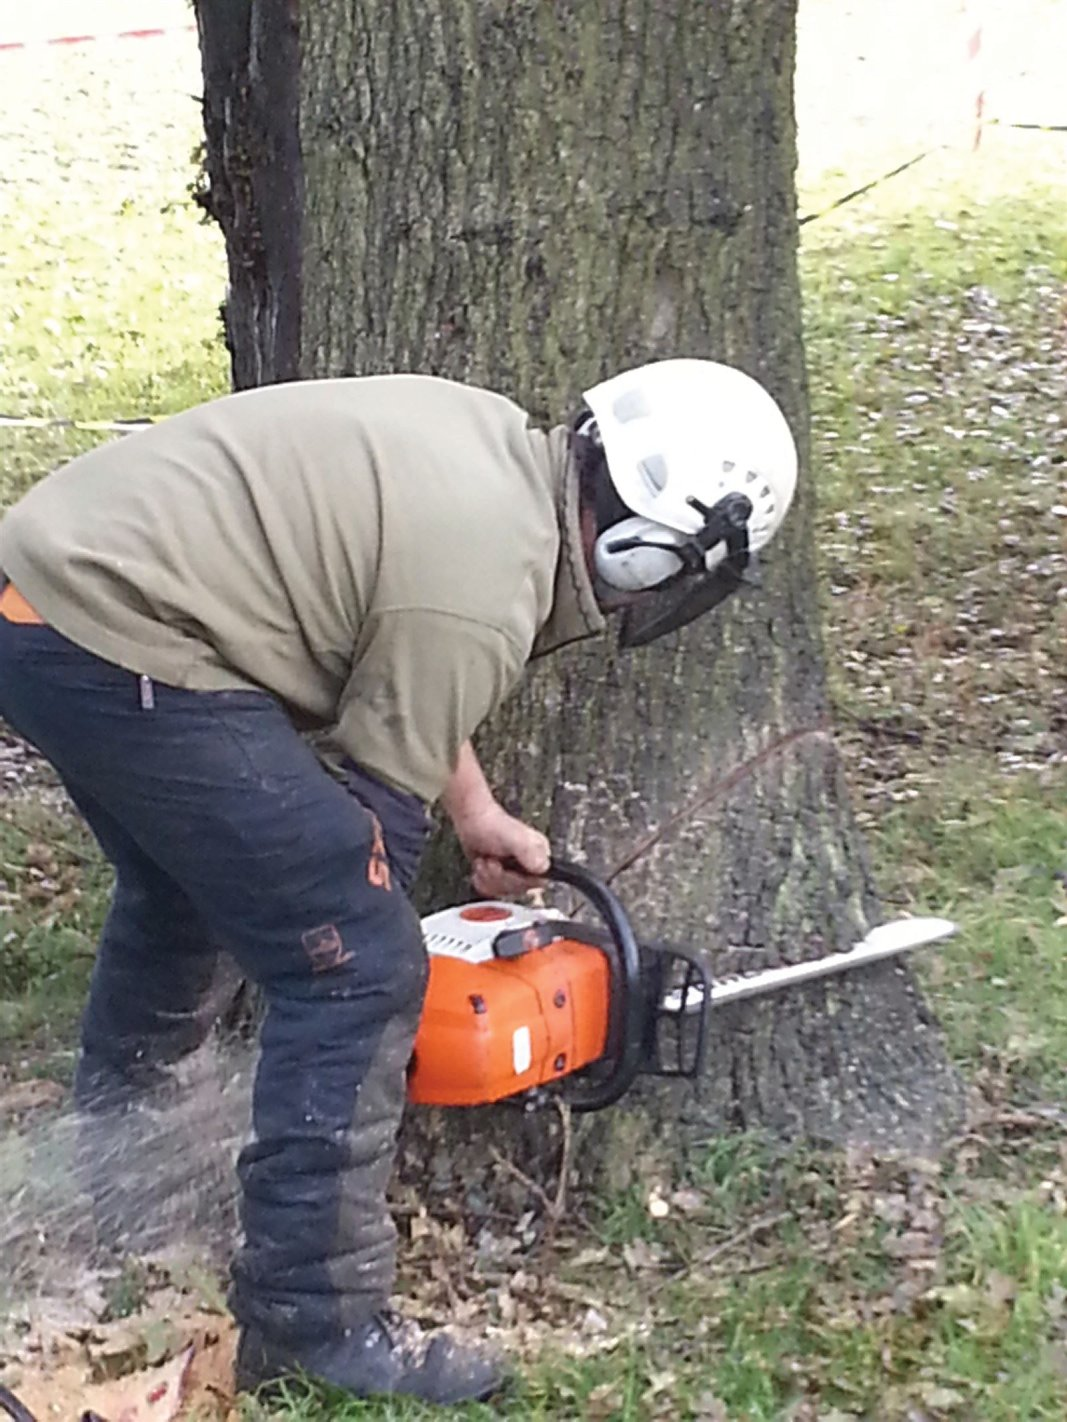 Arborocultural and tree services in industrial areas, factory grounds and business parks in Edinburgh, Midlothian, East Lothian, Fife and the Scottish Borders regions